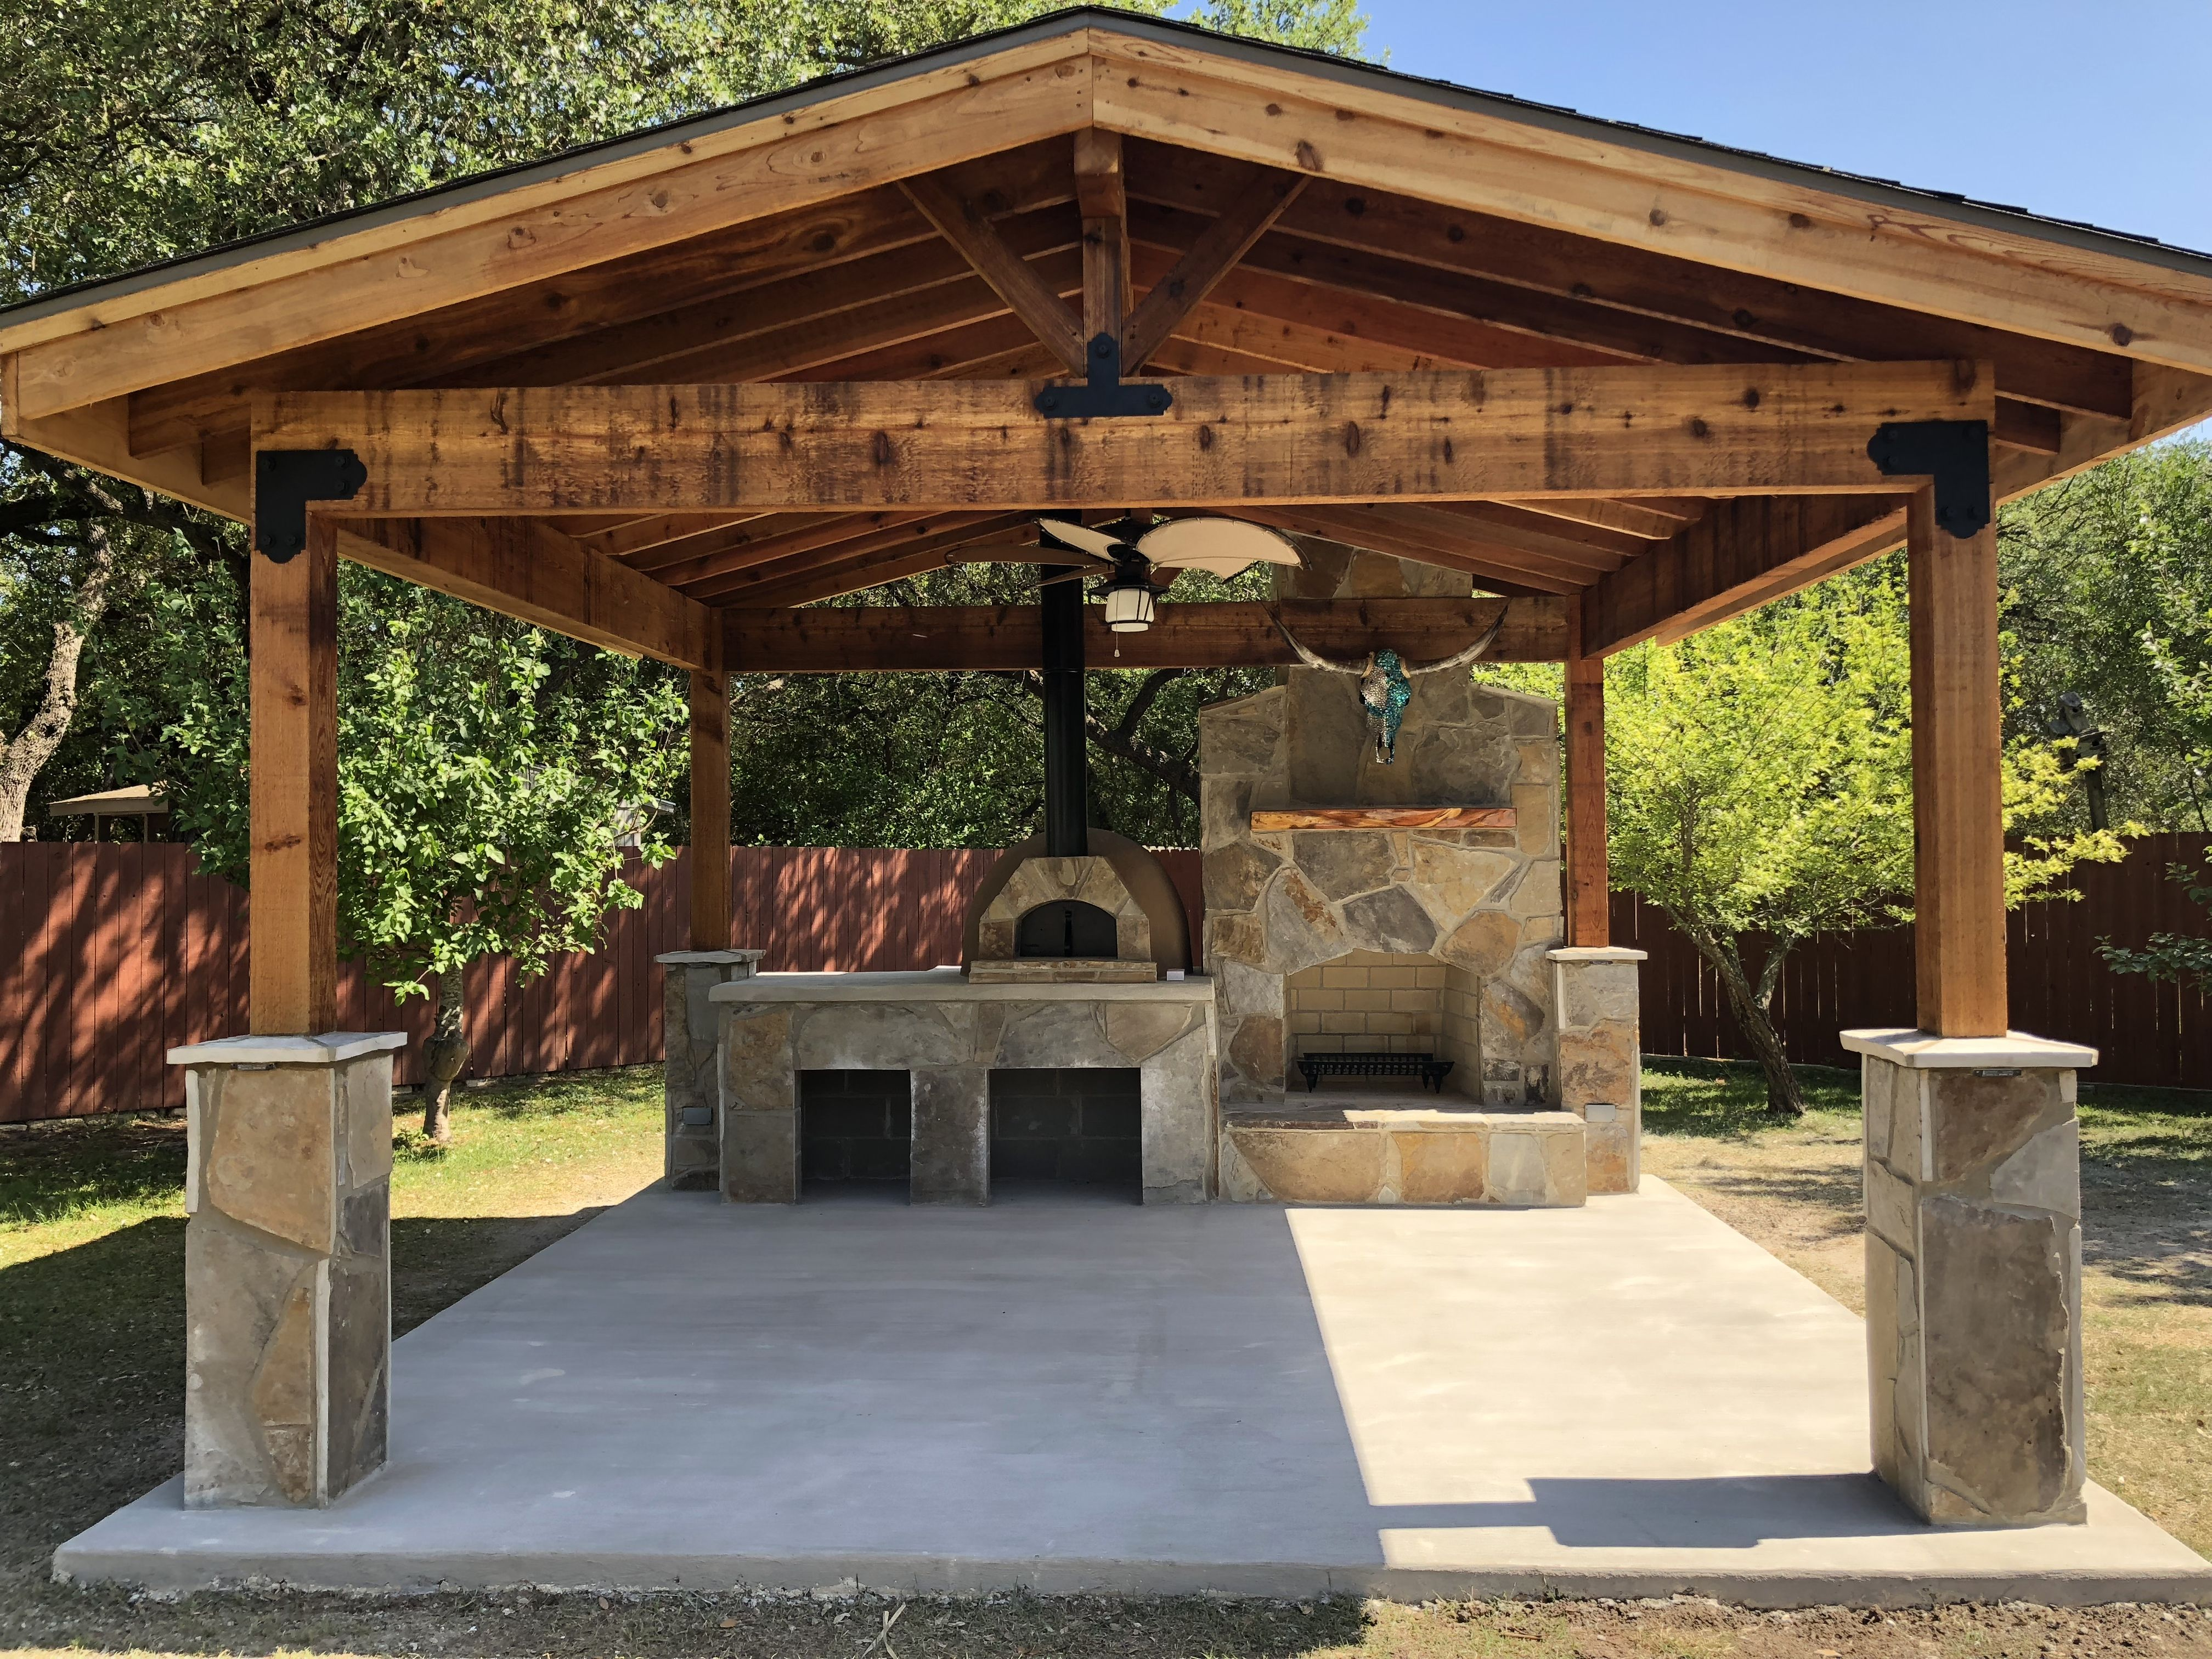 16x16 Pad With Fireplace And Forno Bravo Casa 80 Pizza Oven And Cedar Pavilion Backyard Pavilion Backyard Patio Designs Outdoor Kitchen Patio